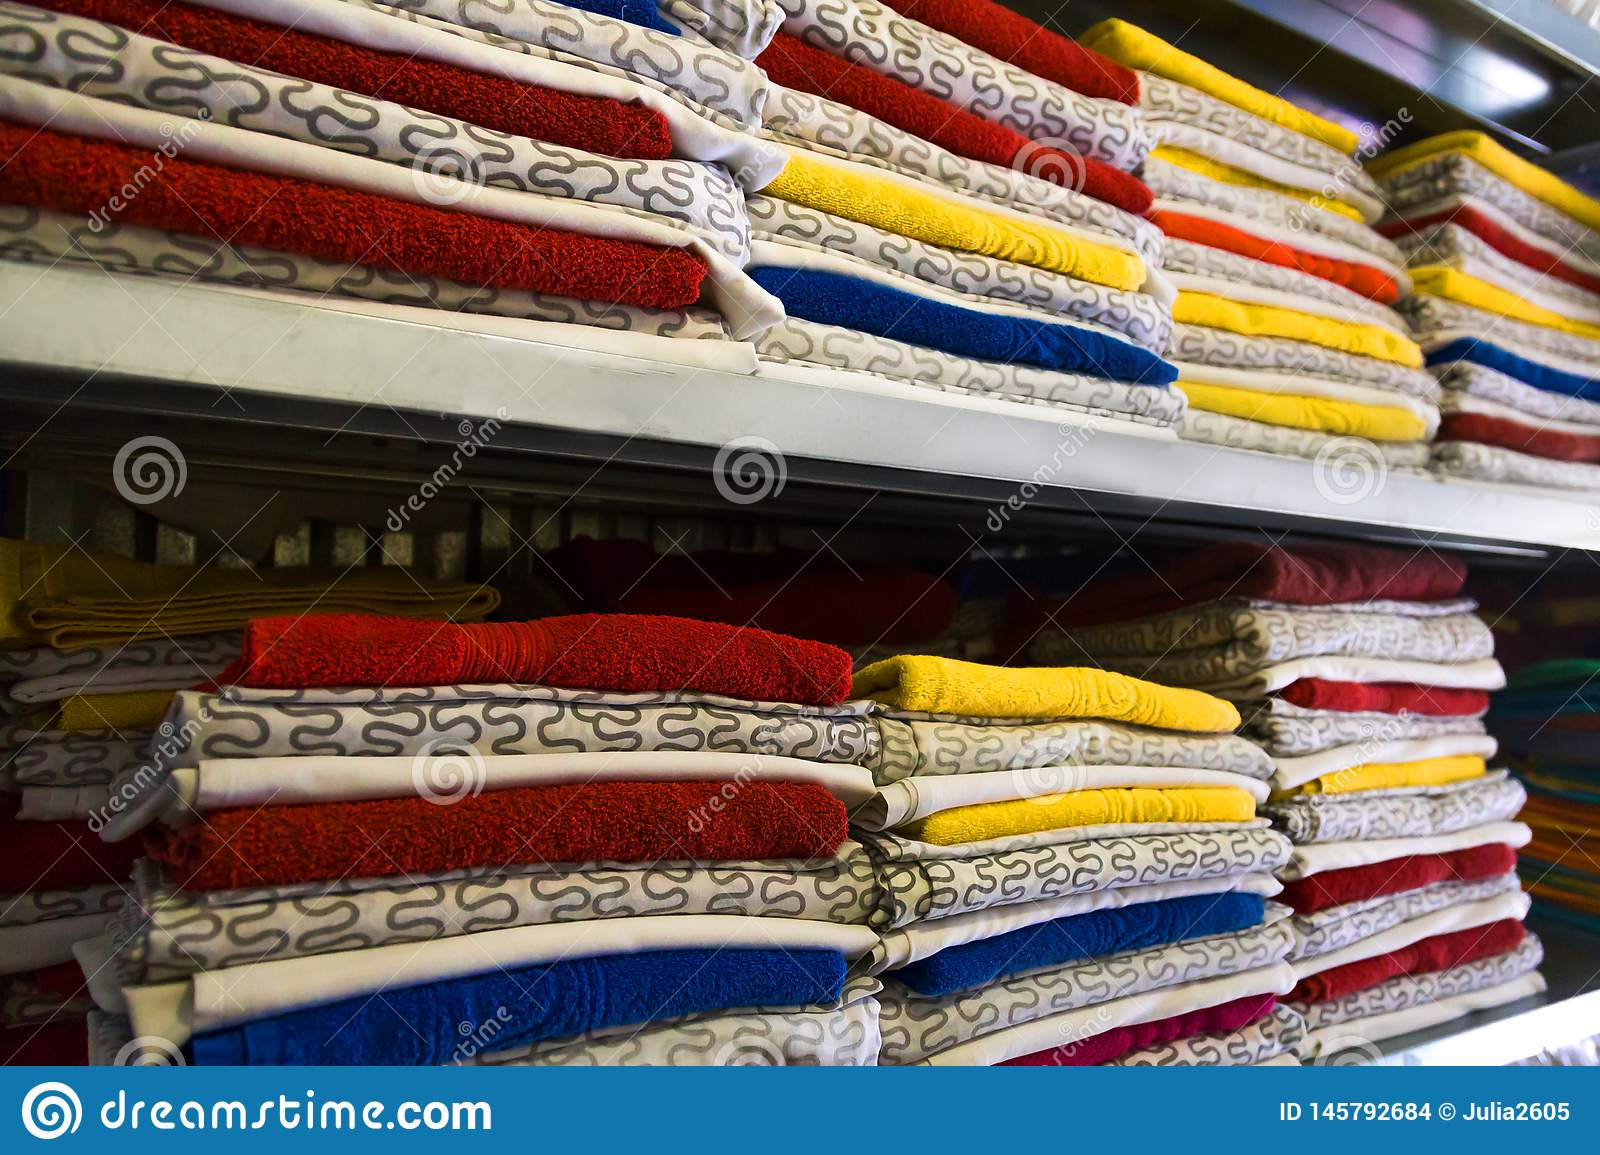 Fresh hotel towels and bed linen are stacked on the shelf